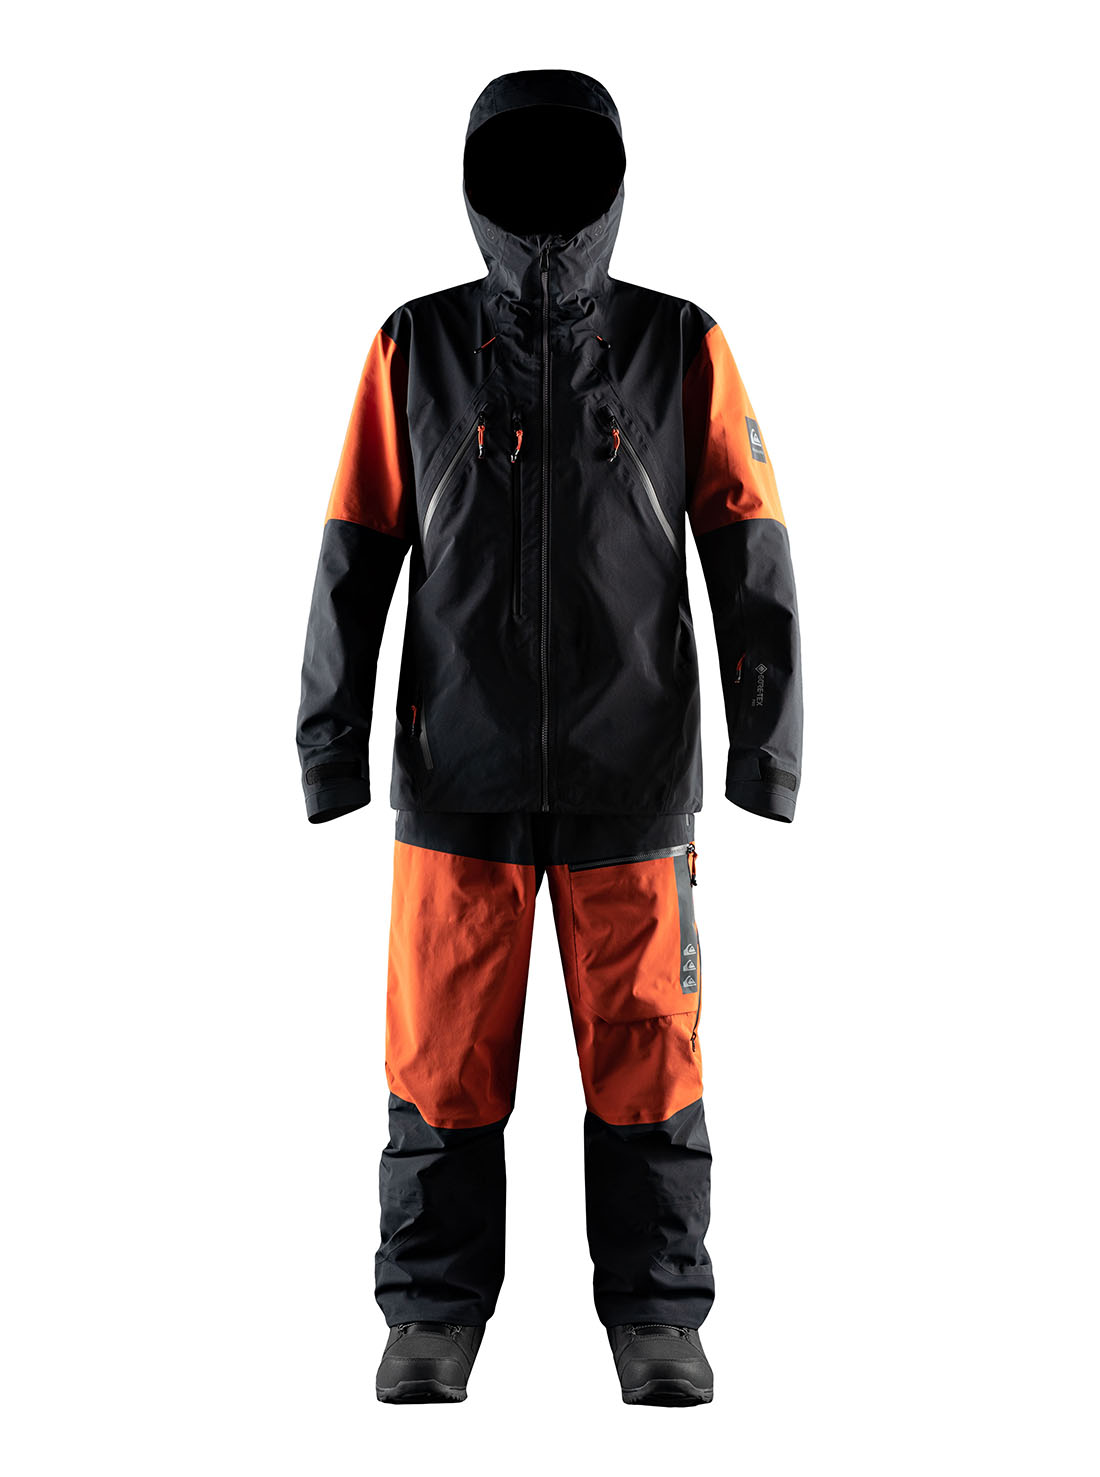 Quiksilver - Collection Highline Pro 2020